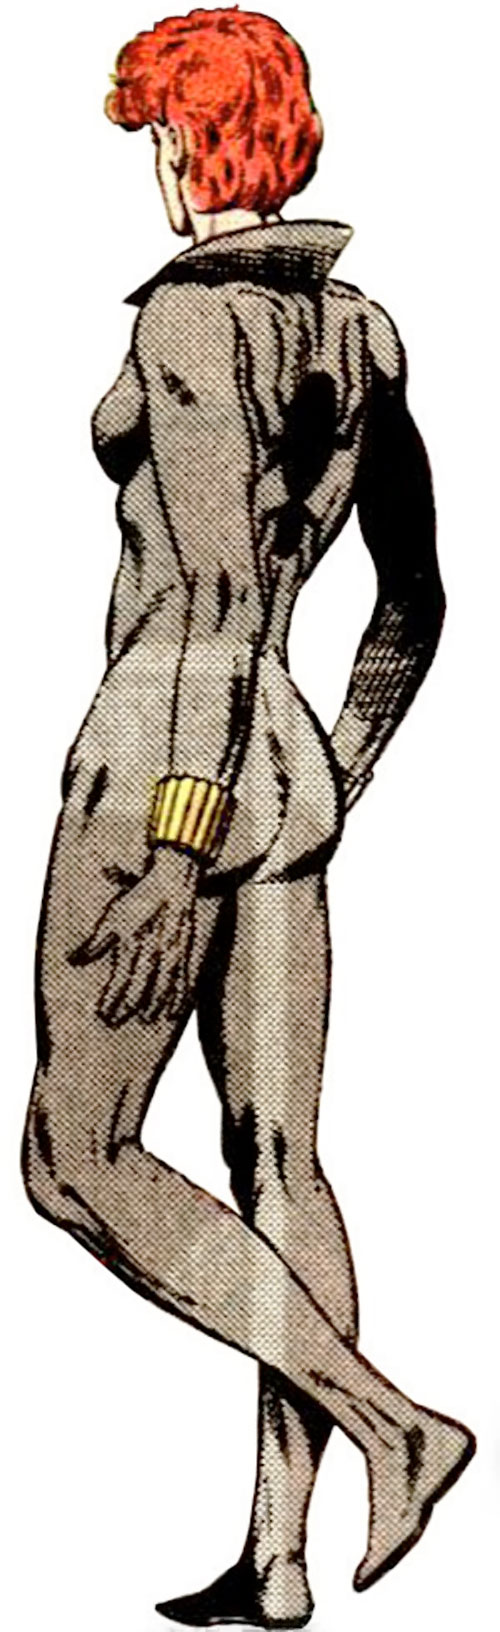 Black Widow (1980s Marvel Comics) back view in the gray costume